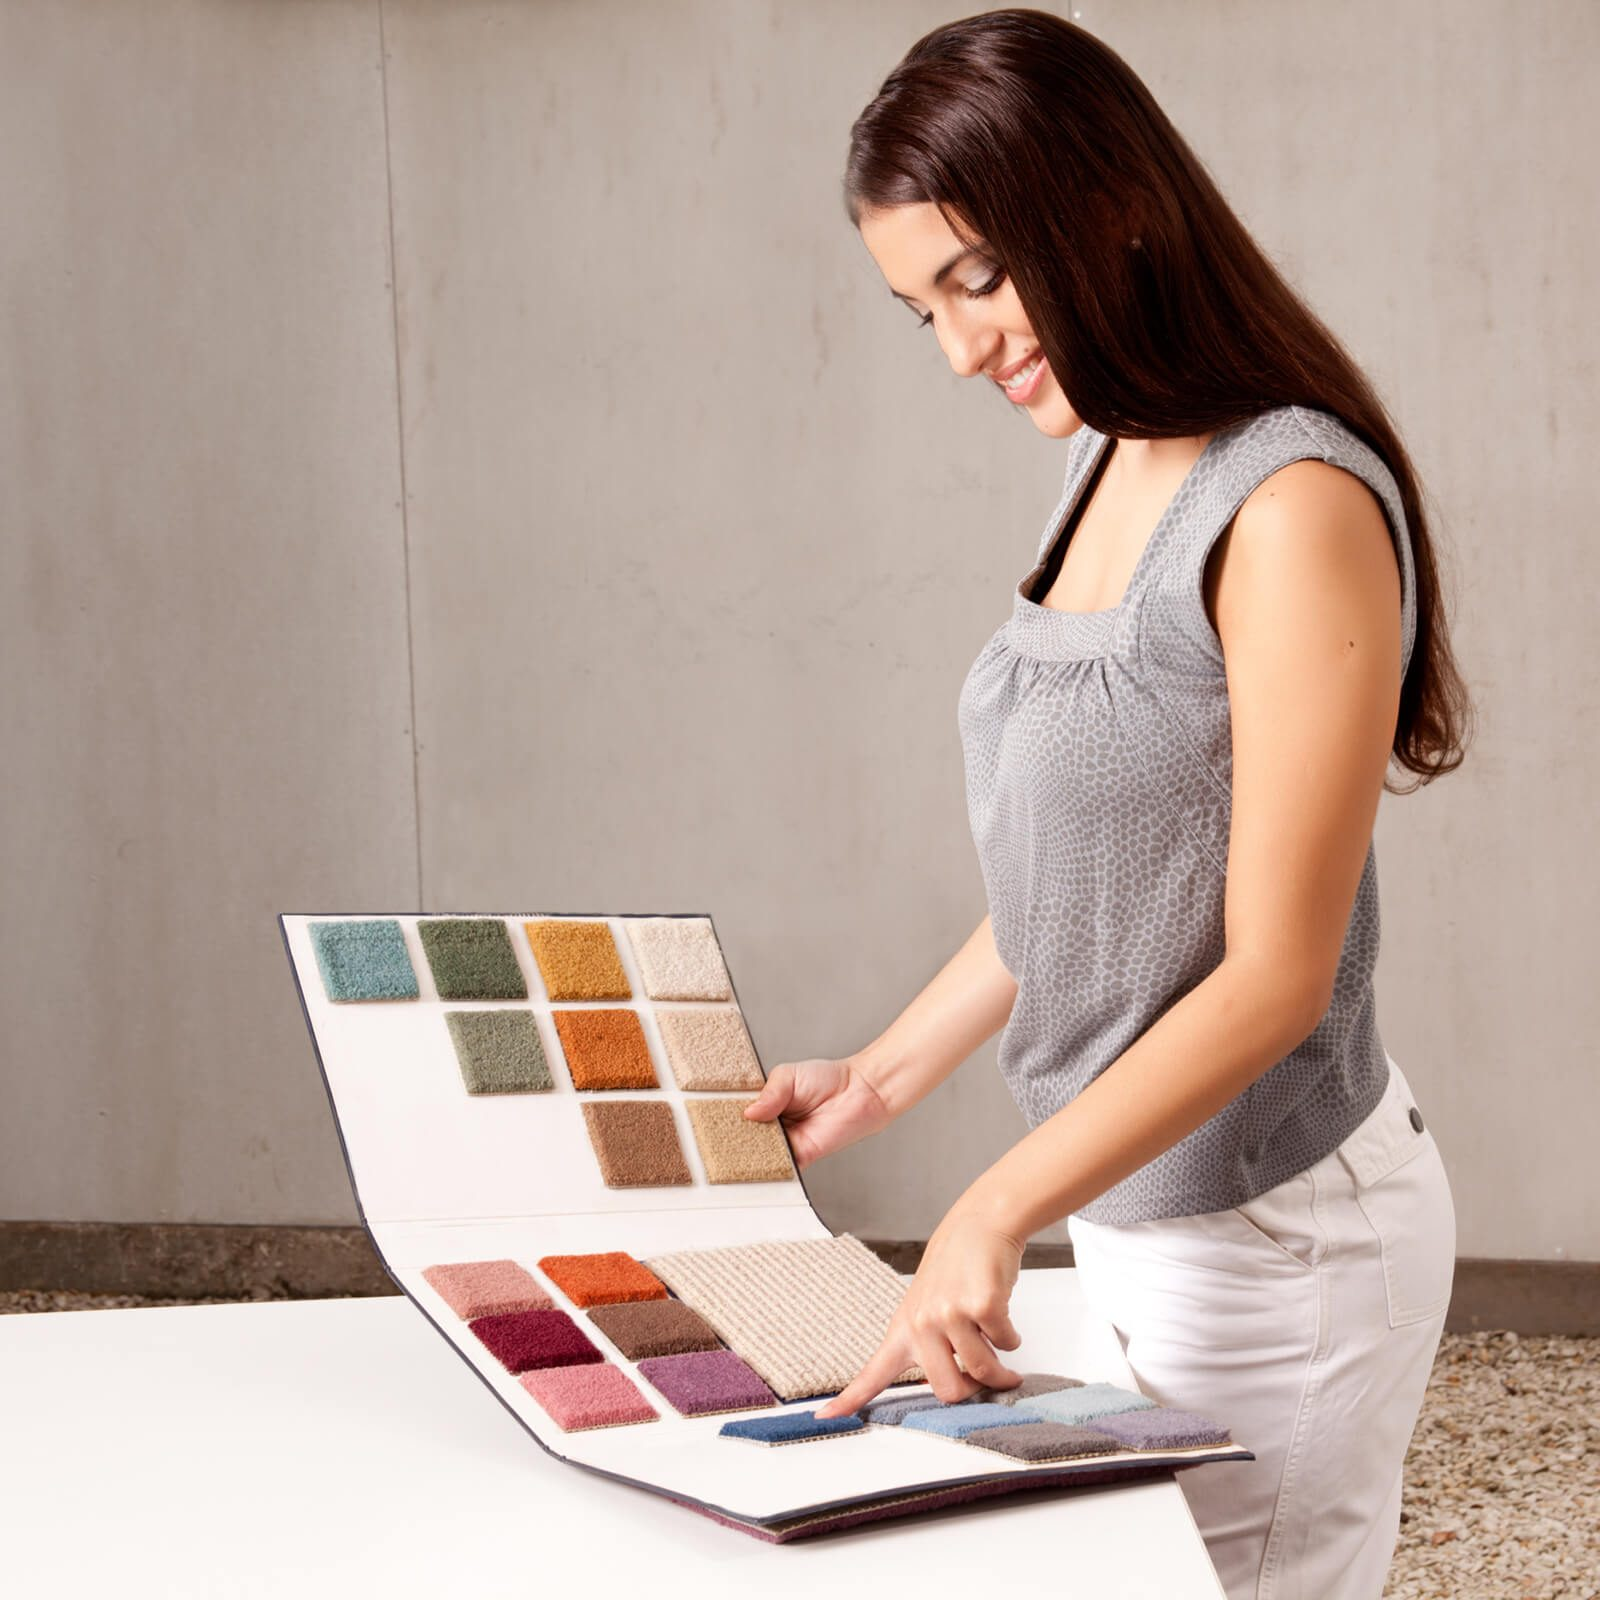 Shop at home with different variety   BMG Flooring & Tile Center